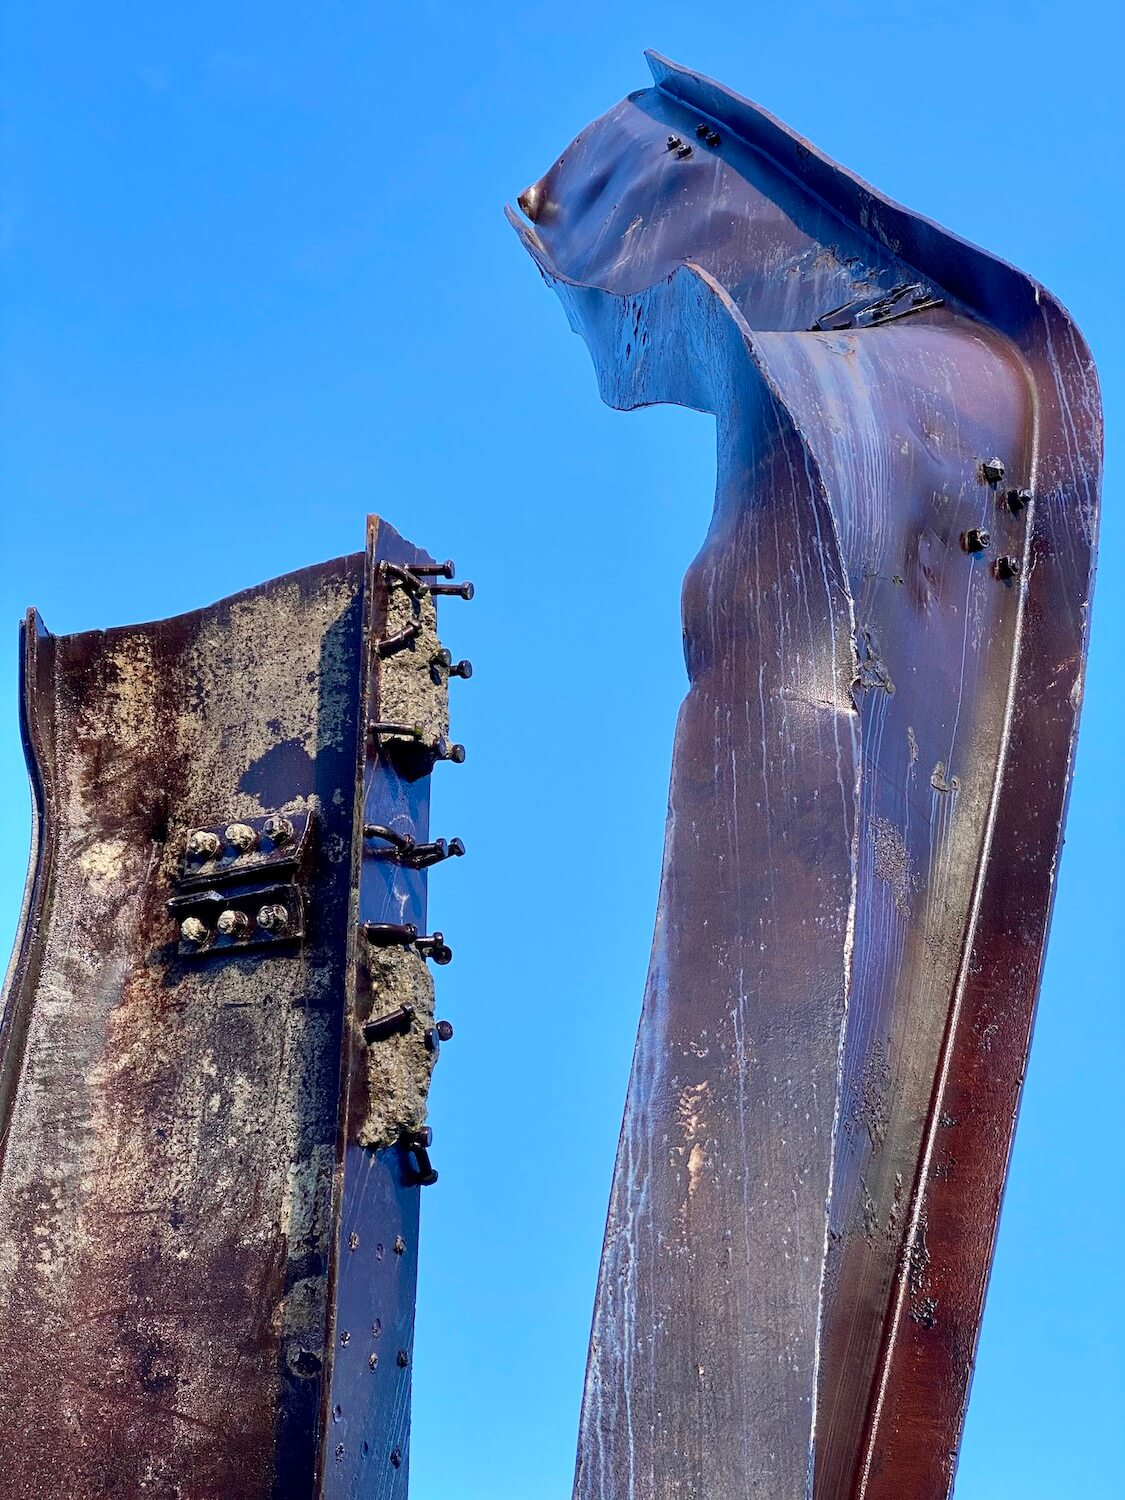 Two steel girders salvaged from Ground Zero following the attacks on the World Trade Center on 9/11.  They are purplish in color and show parts of concrete still attached to the steel and bolts loosely hanging onto the steel.  The sky in the background is a strong blue color.